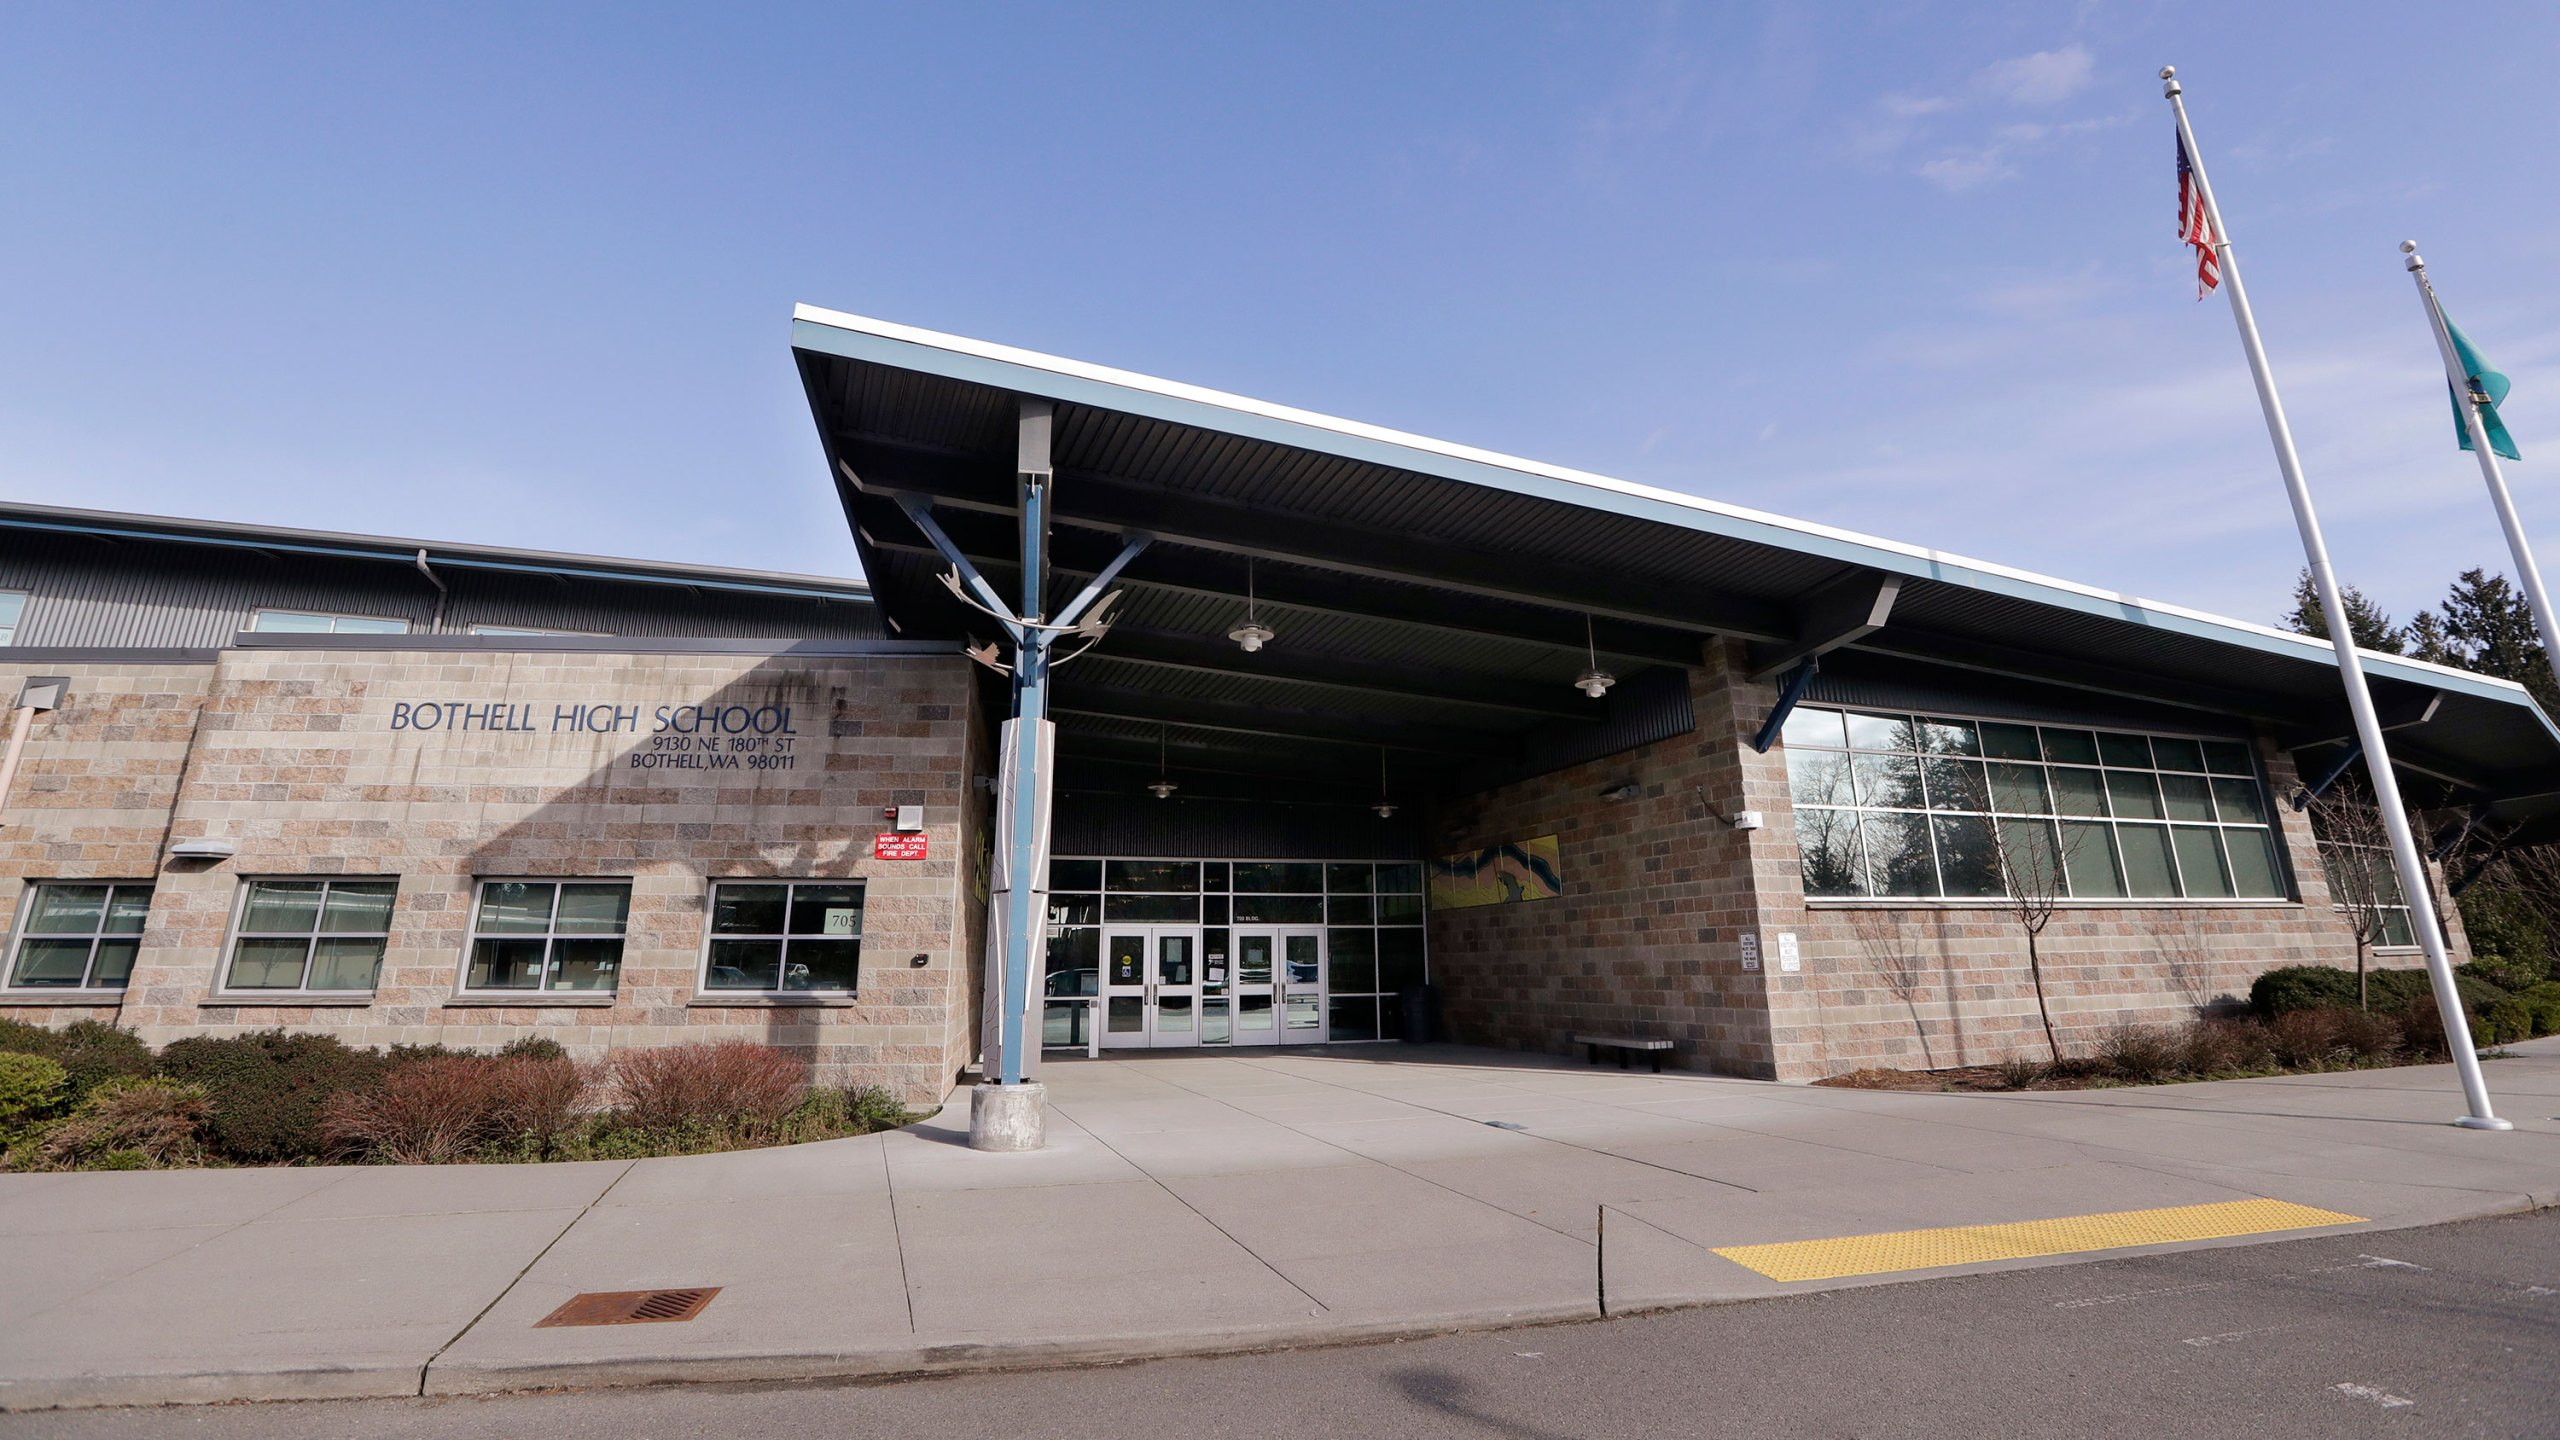 Bothell High School stands closed for the day on Feb. 27, 2020. (Elaine Thompson/AP via CNN Wire)